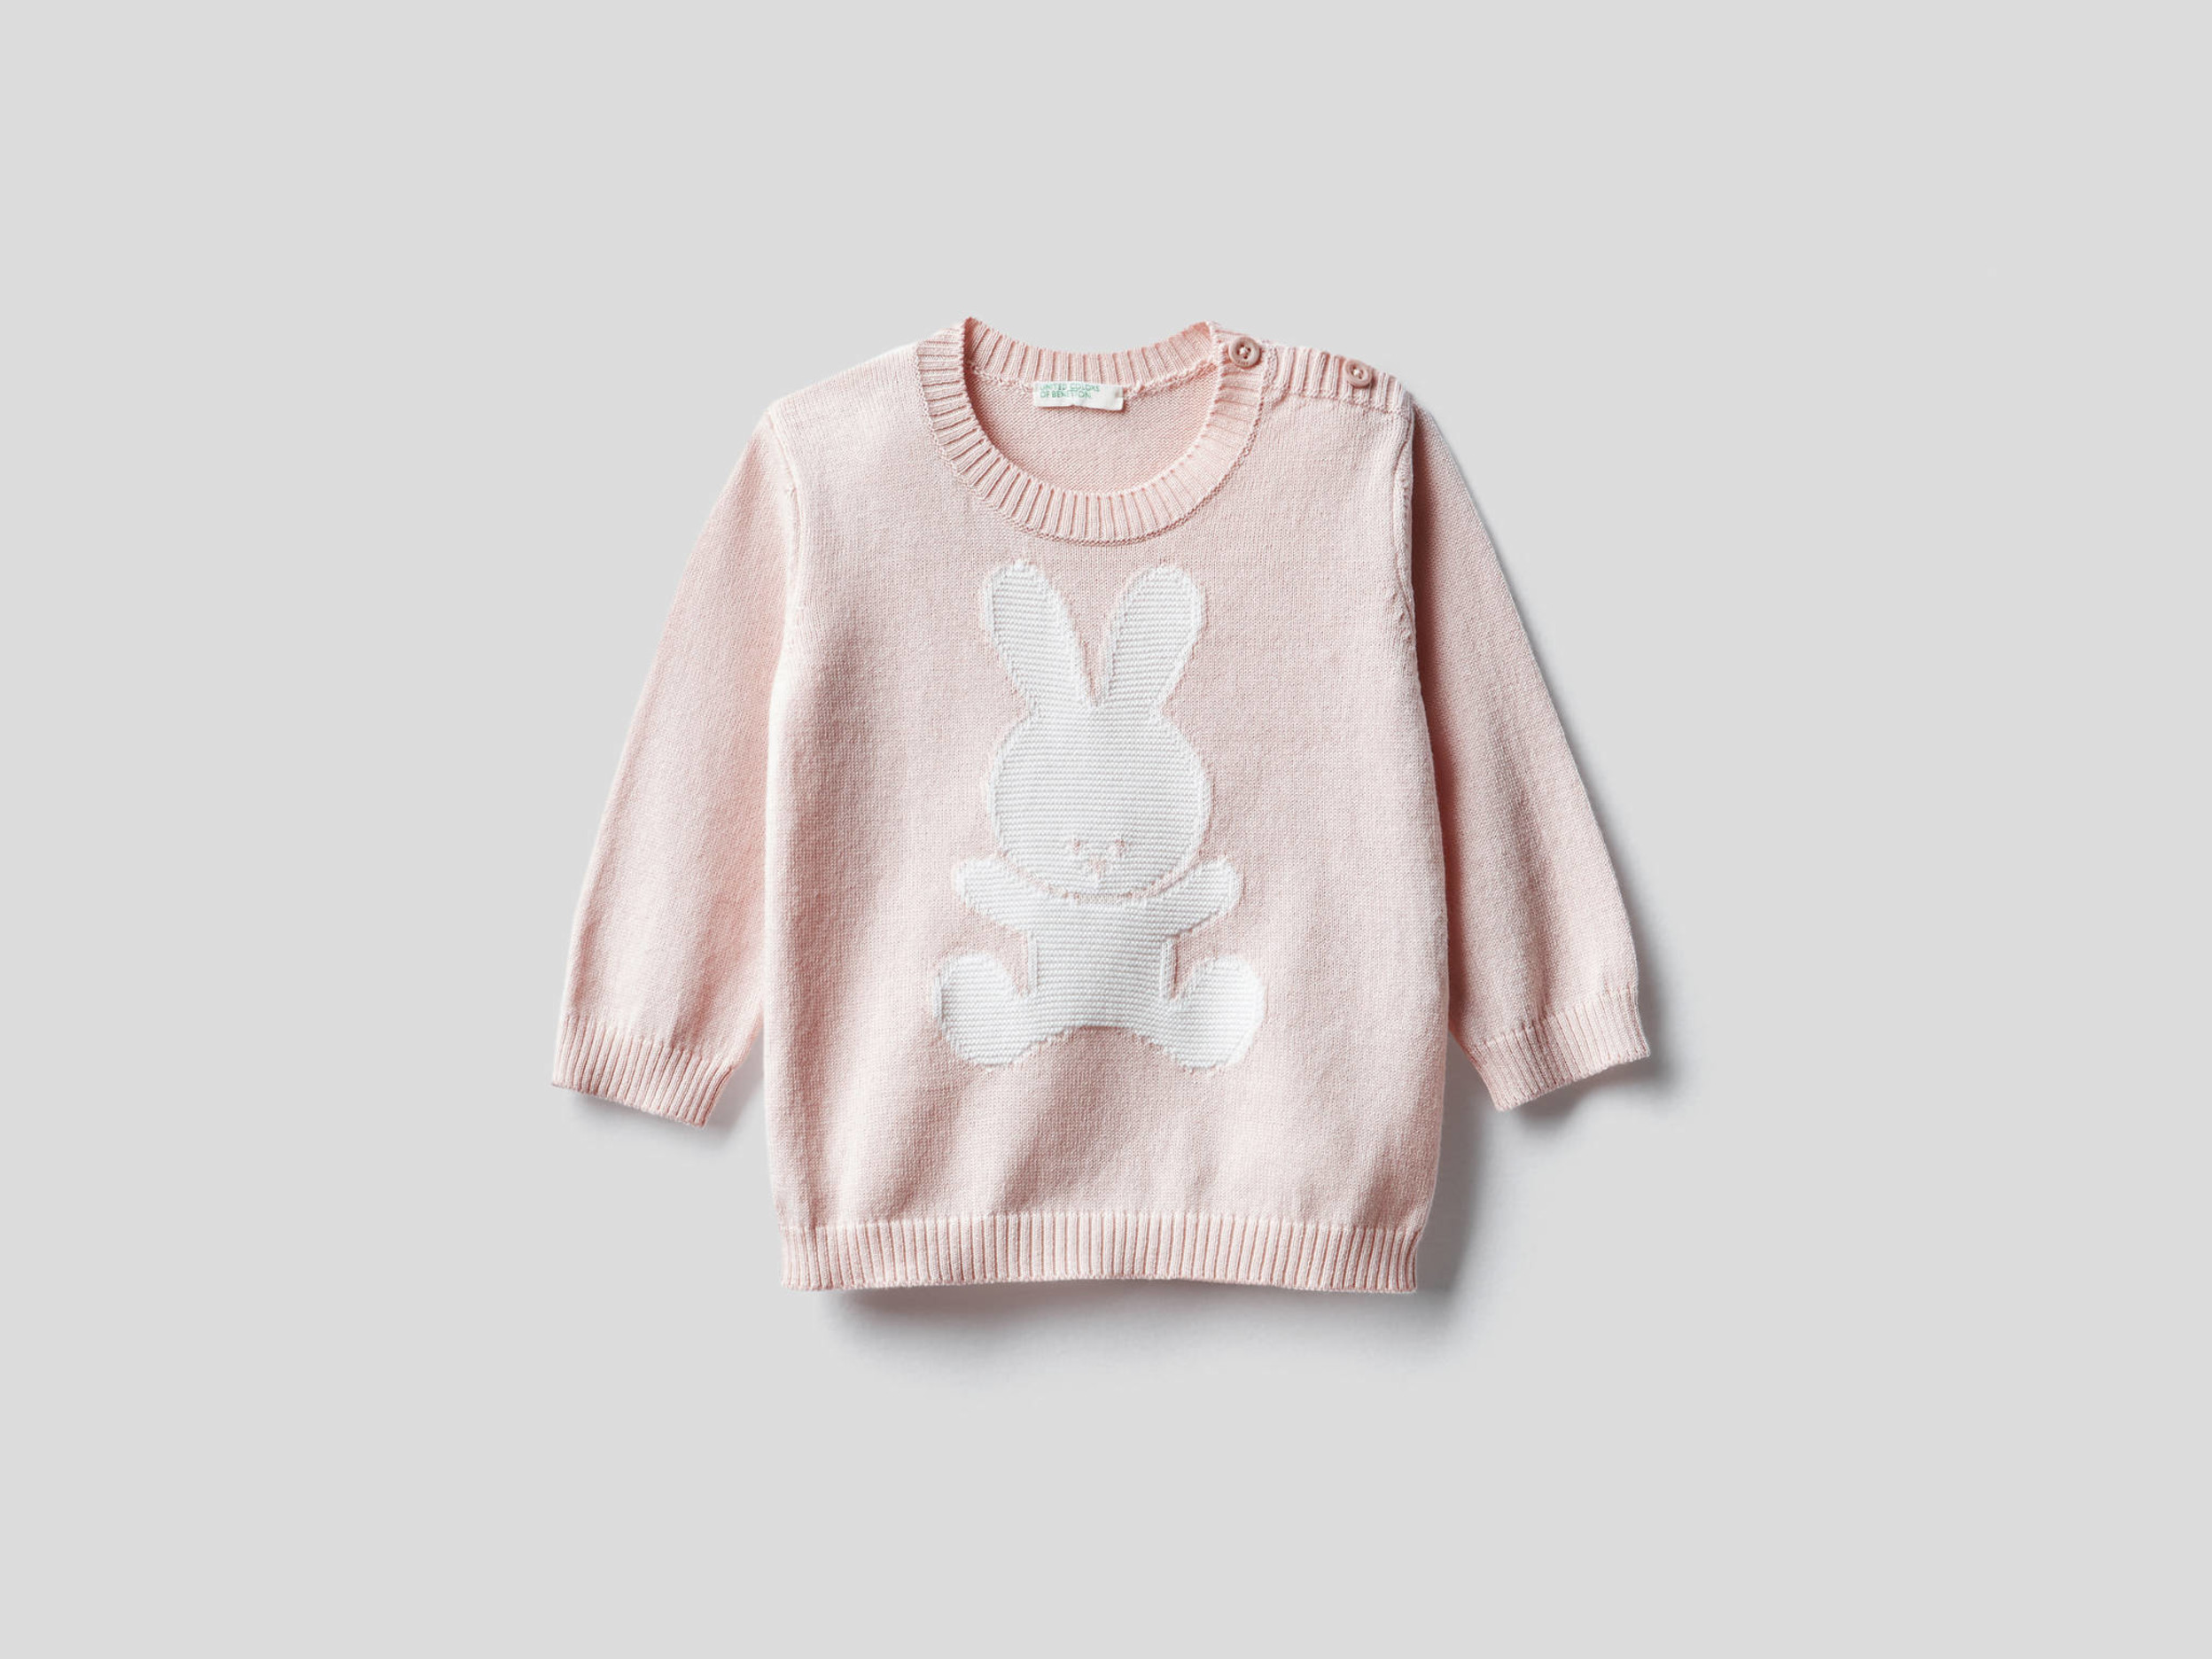 Benetton, 100% Cotton Sweater With Inlay, size , Pink, Kids